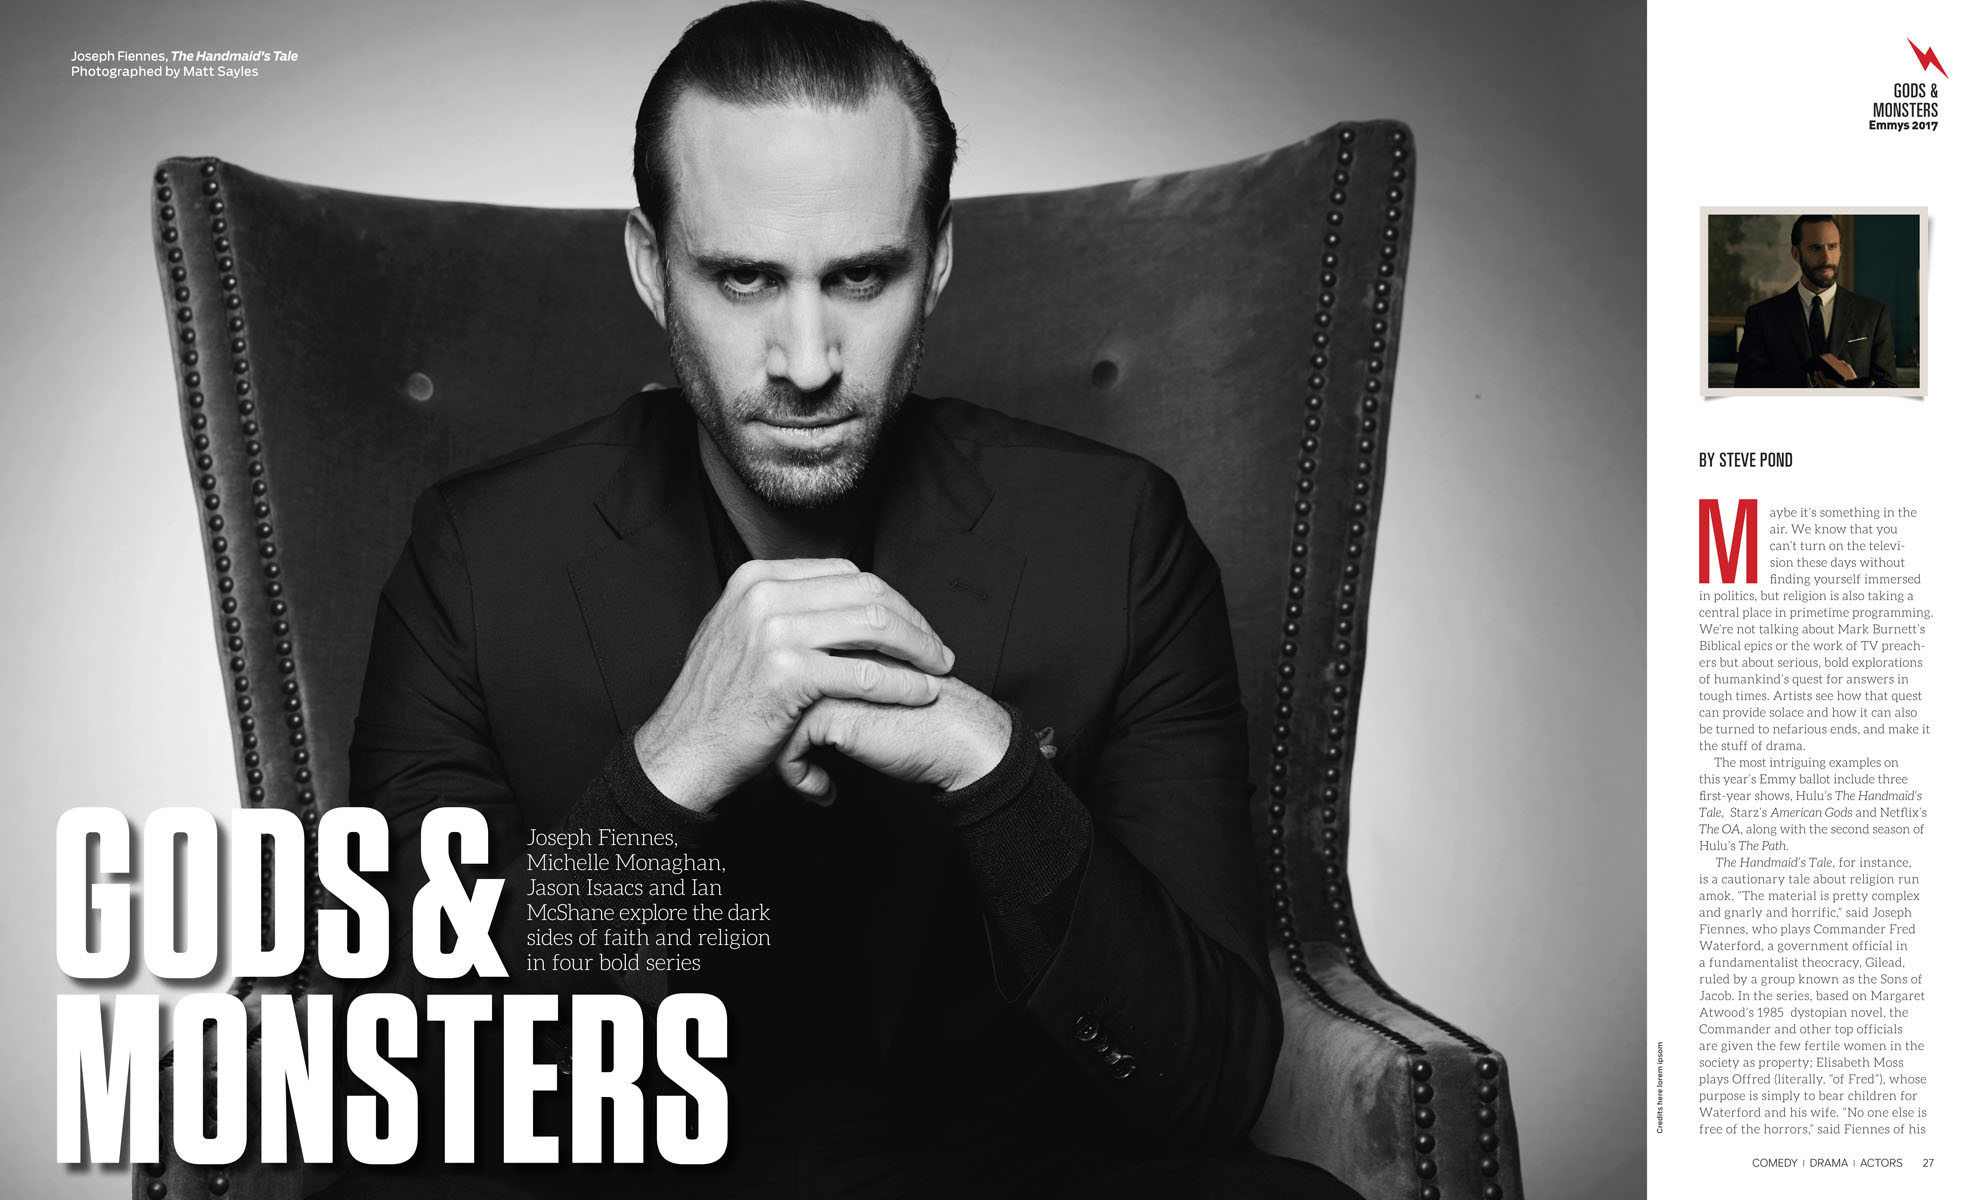 Joseph Fiennes | The Wrap